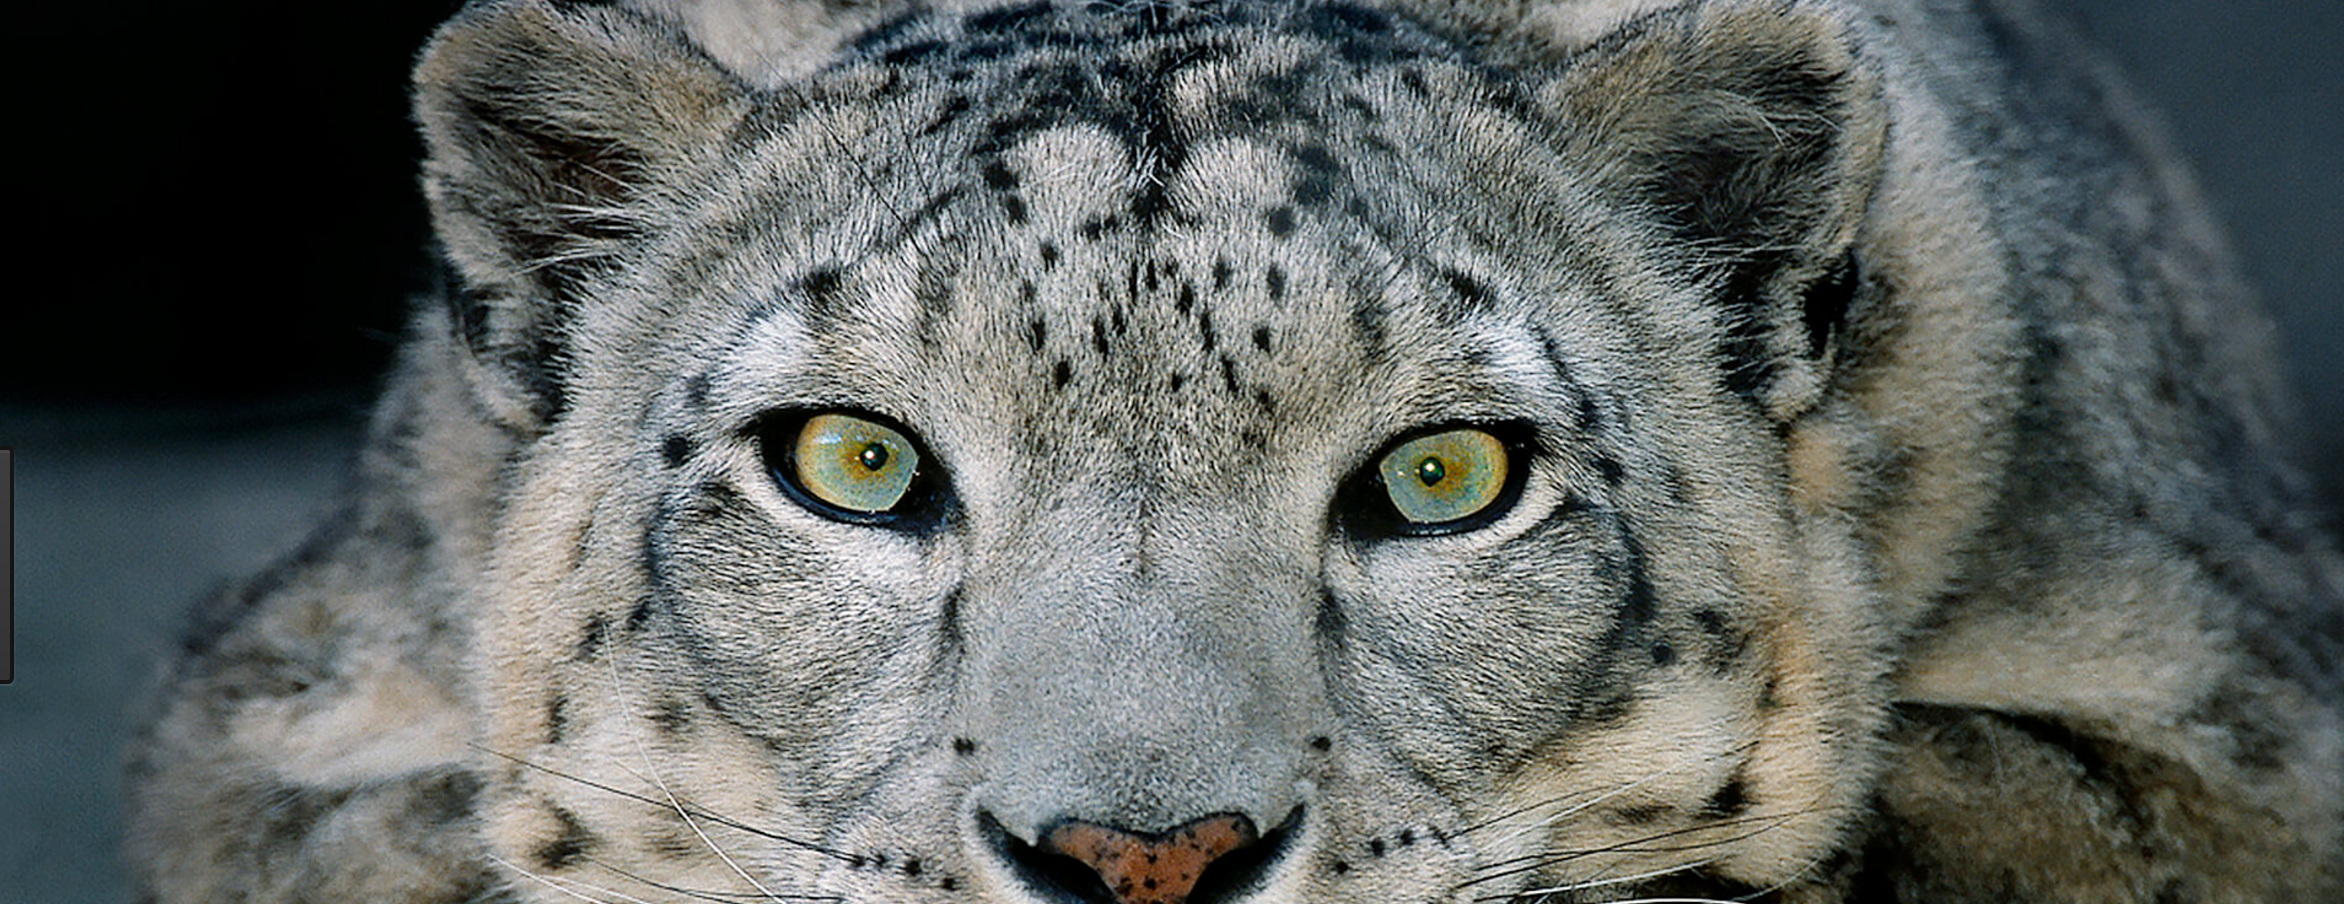 Snow Leopard Conservation Gets Boost From New Discovery